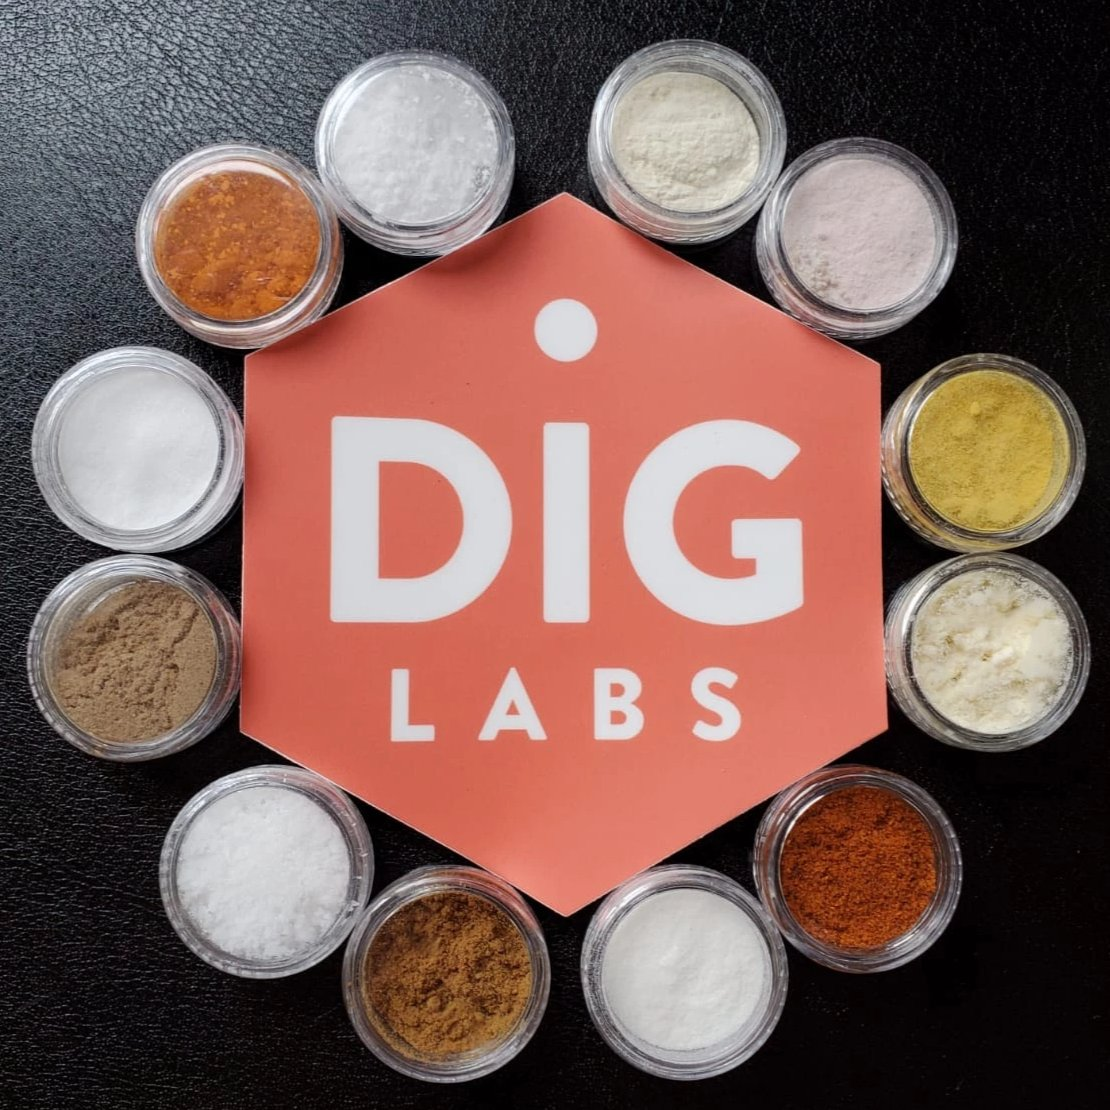 Personalized All-in-One PupSup Membership - DIG Labs - Makers of Pup Sup, The Dog Nutrition Supplement